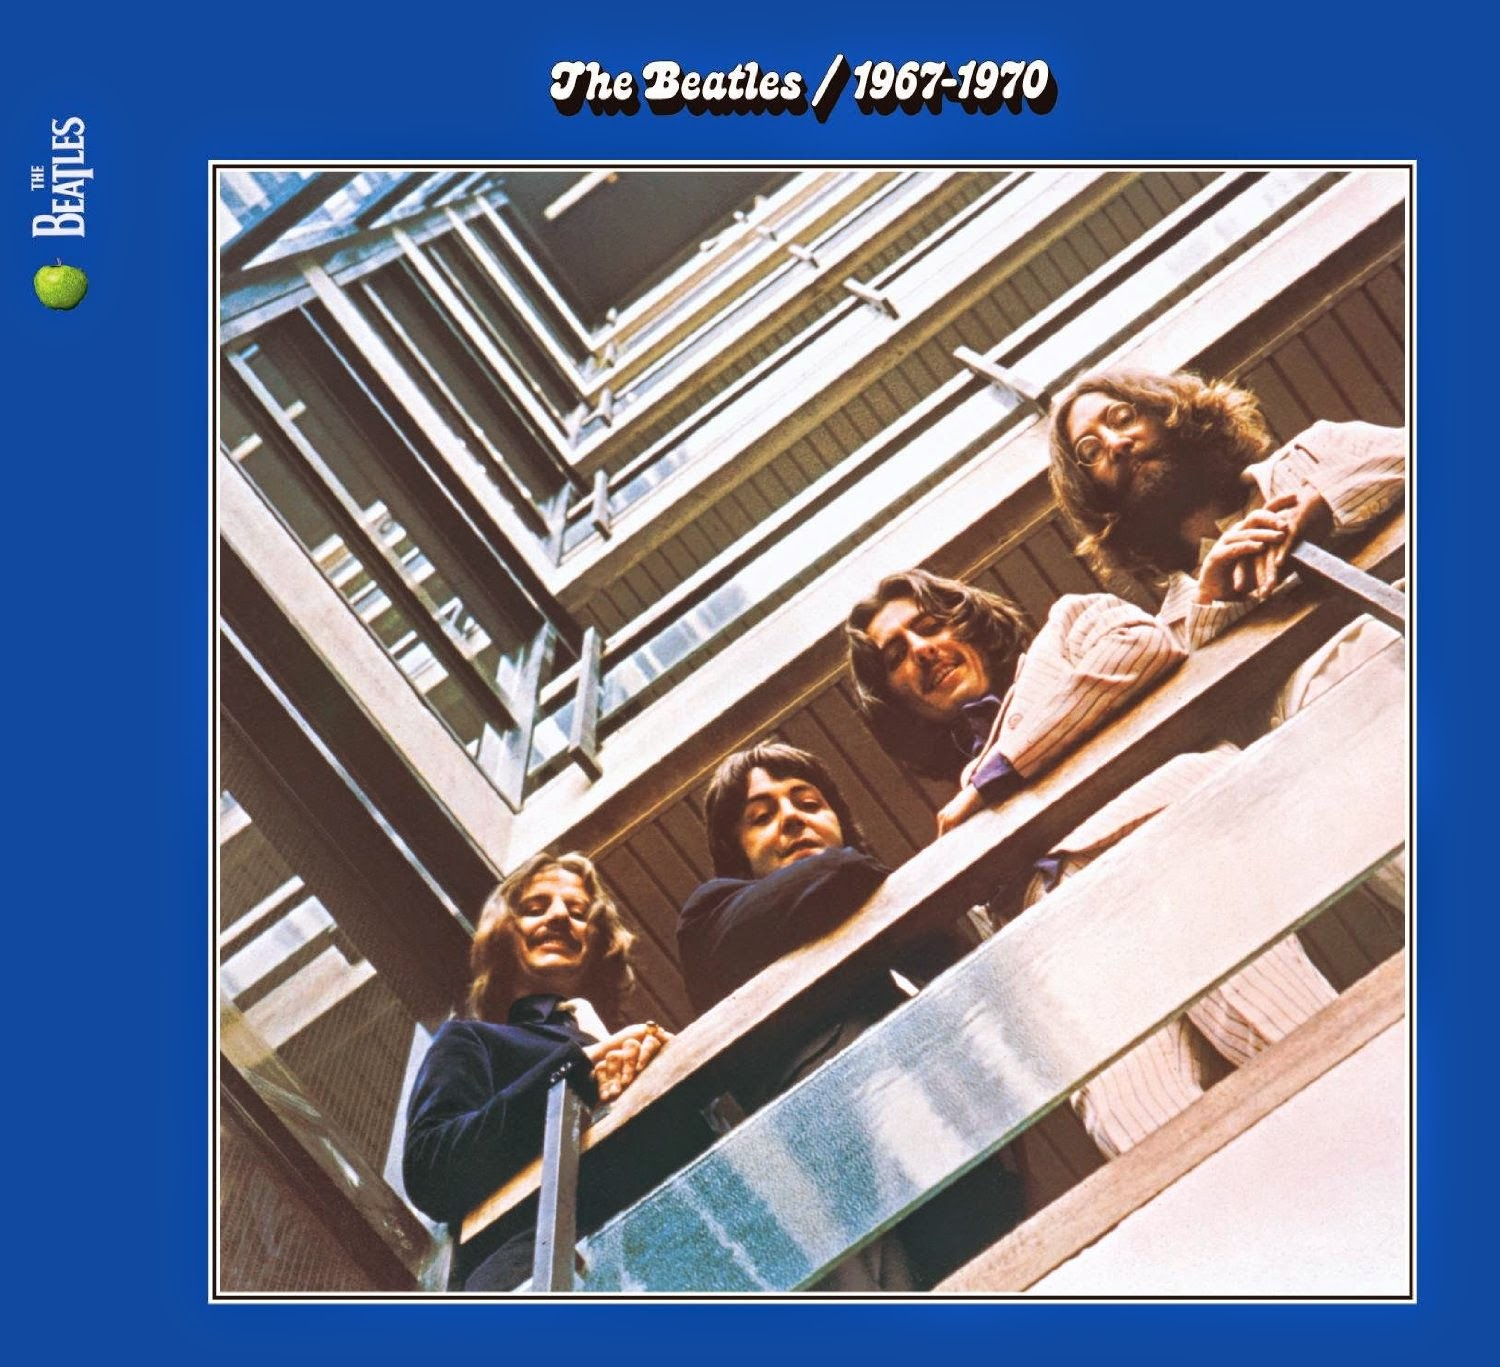 The Daily Beatle October 2014